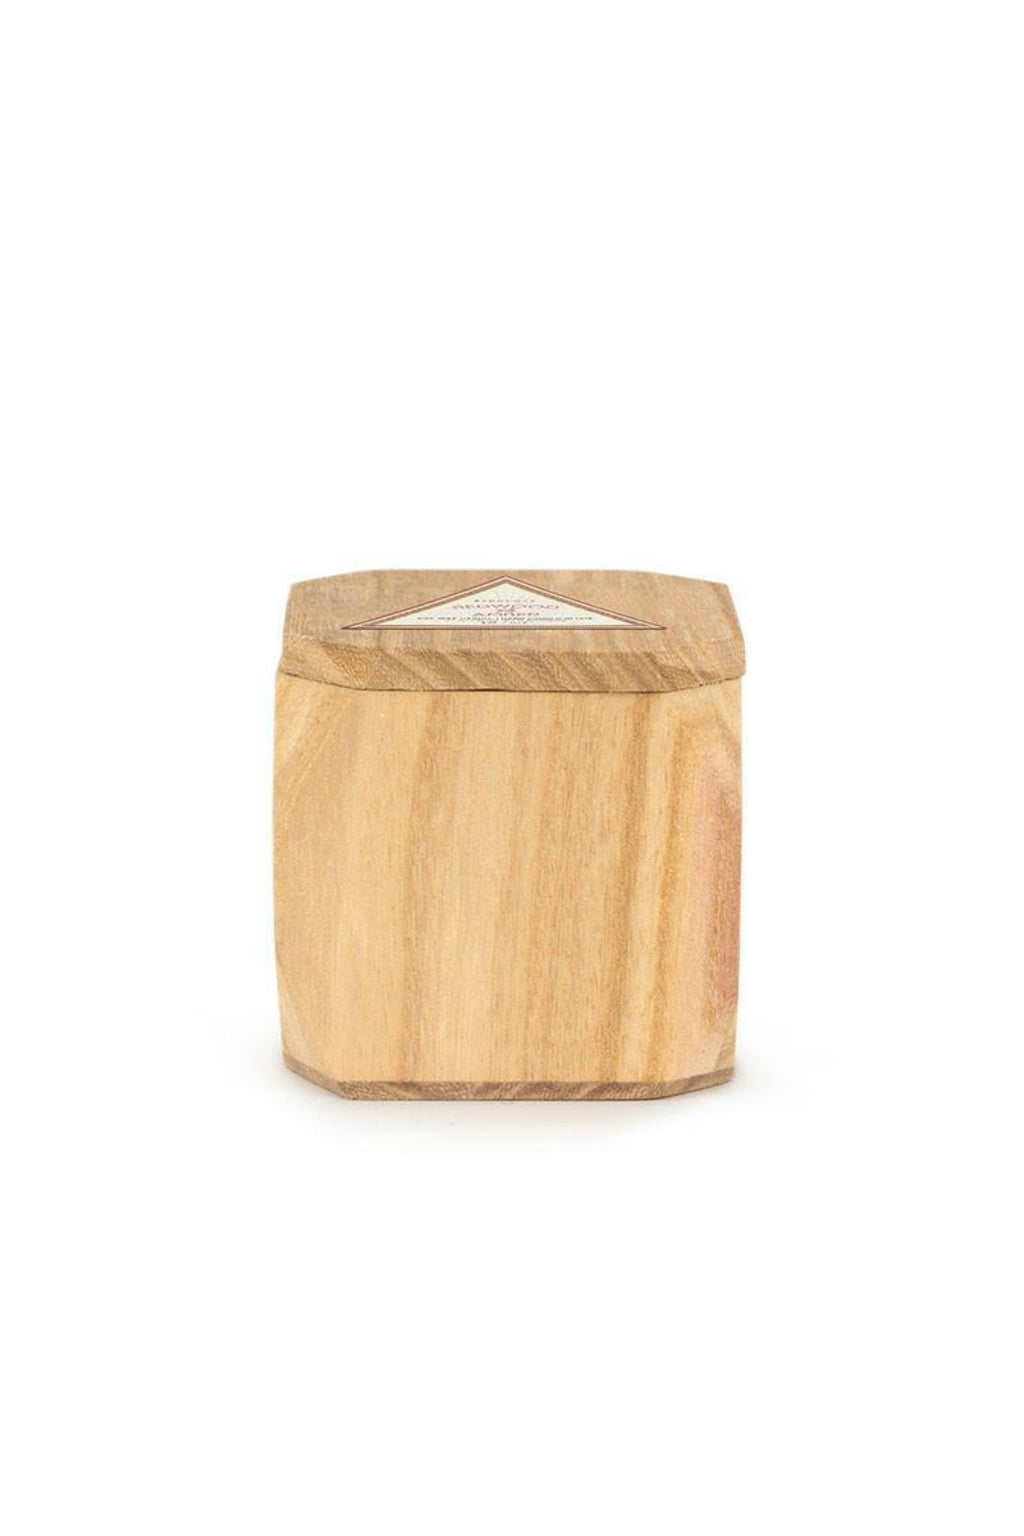 Paddywax Mini Woods Candle - Redwood & Amber